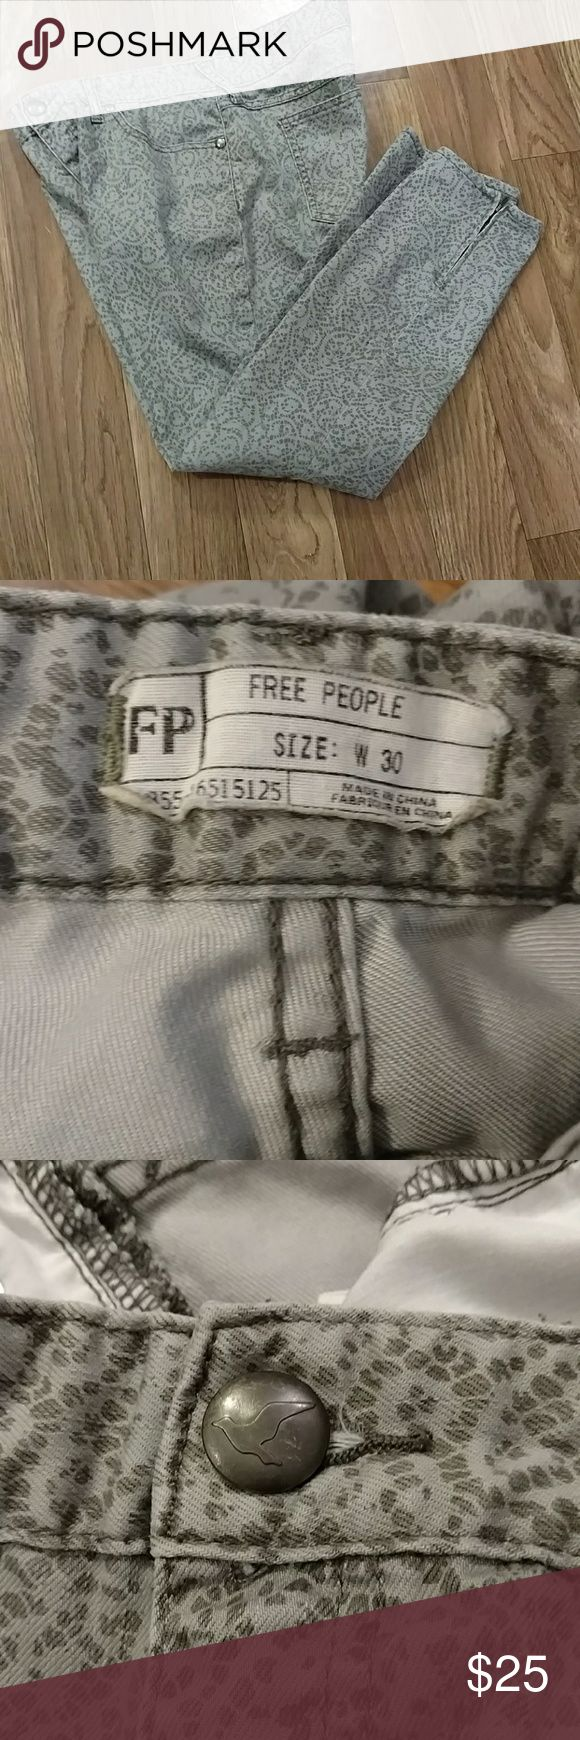 "Free People Jeans These are a a cool printed jean by Free People.  They are in really good condition and have zippers on each leg.  The inseam is 26"".  Bundle and save more! Free People Jeans"